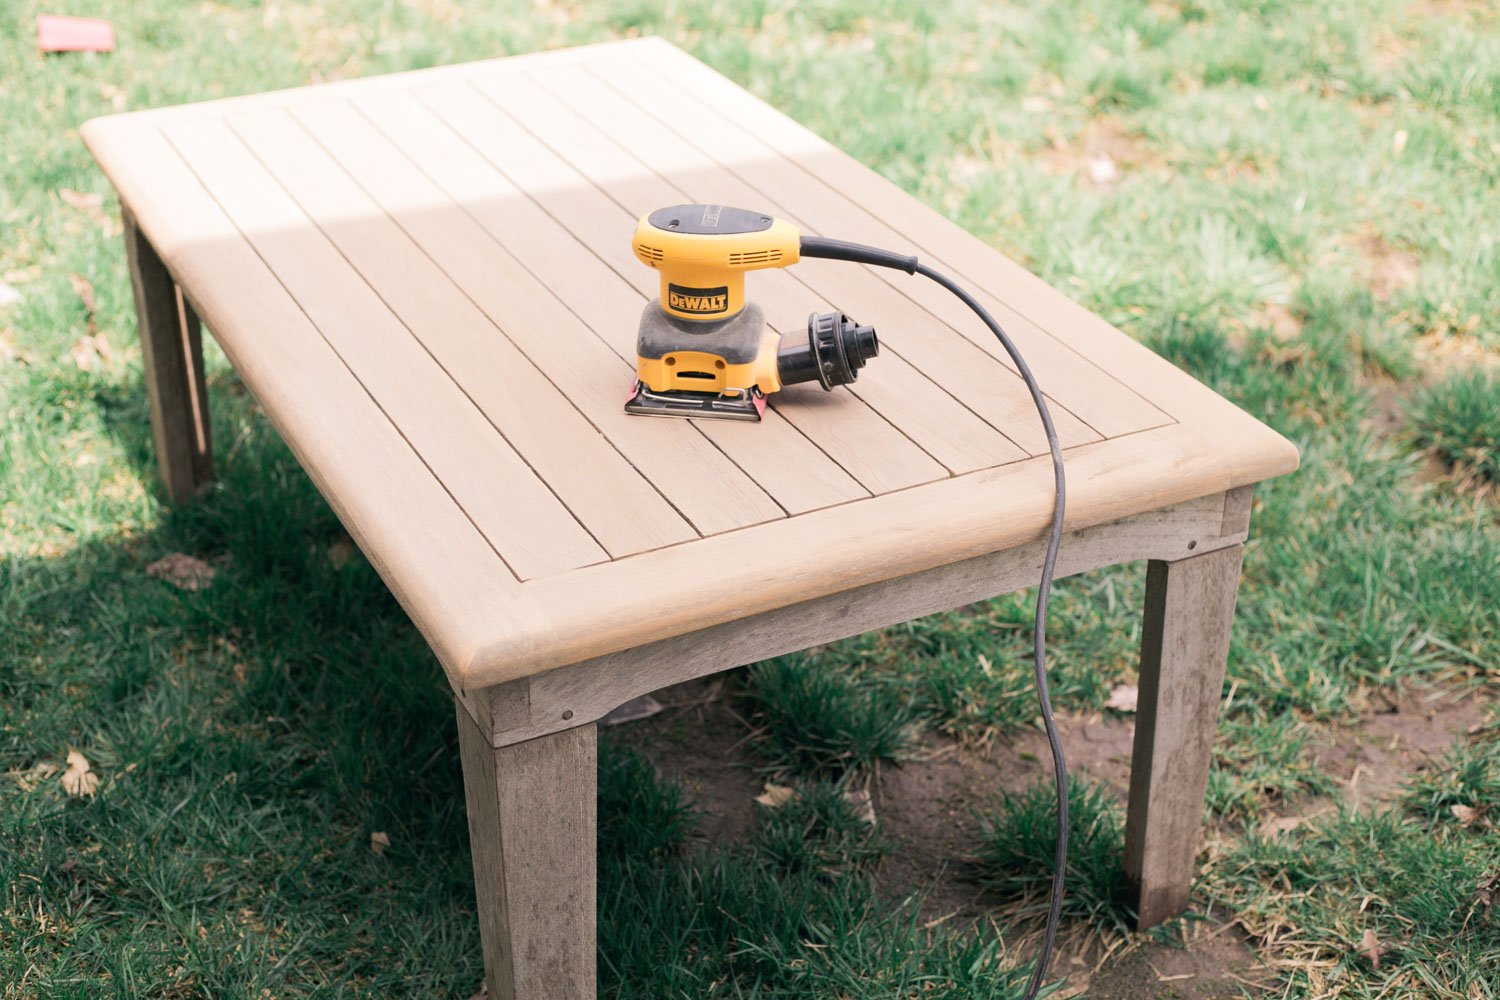 Best Furniture Sander UK frequently asked questions